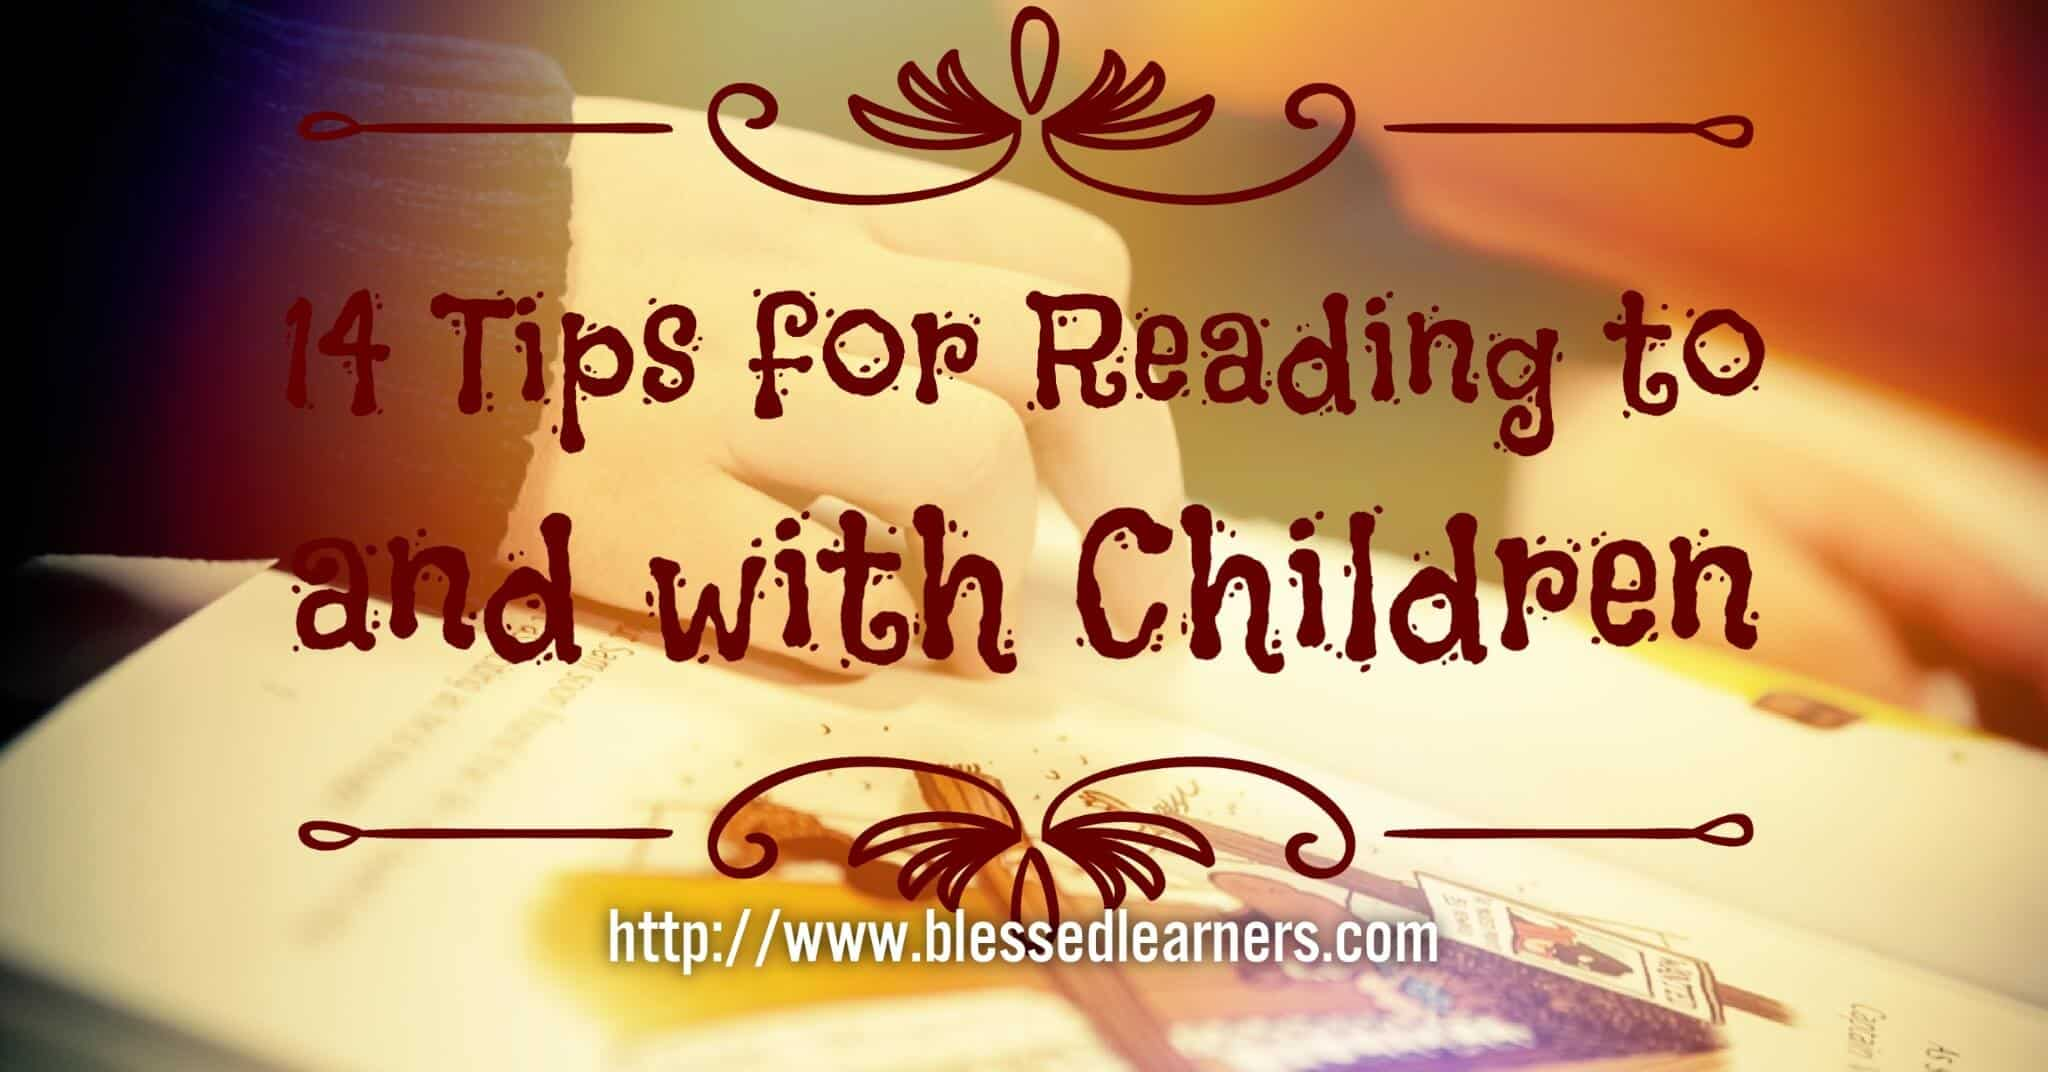 14 Tips for Reading To and With Children